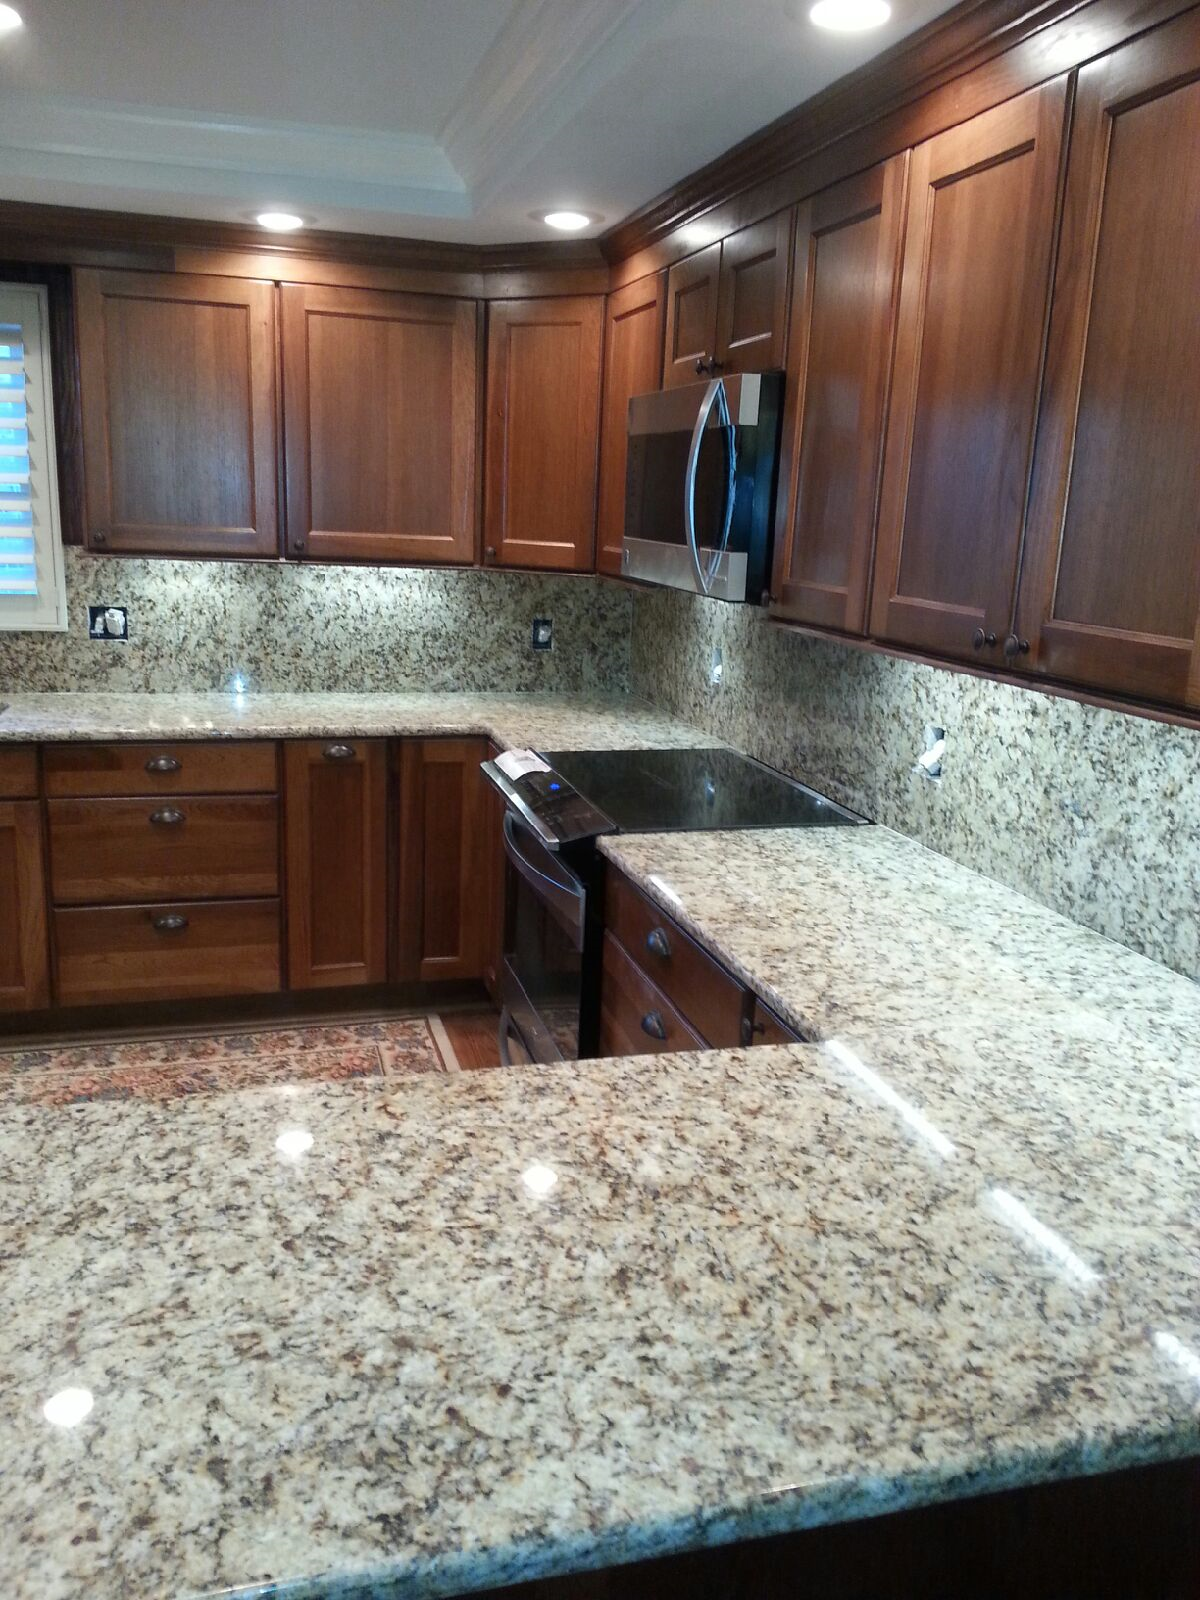 Counter Granite : Granite counter tops can look sharp - but how do you choose the right ...